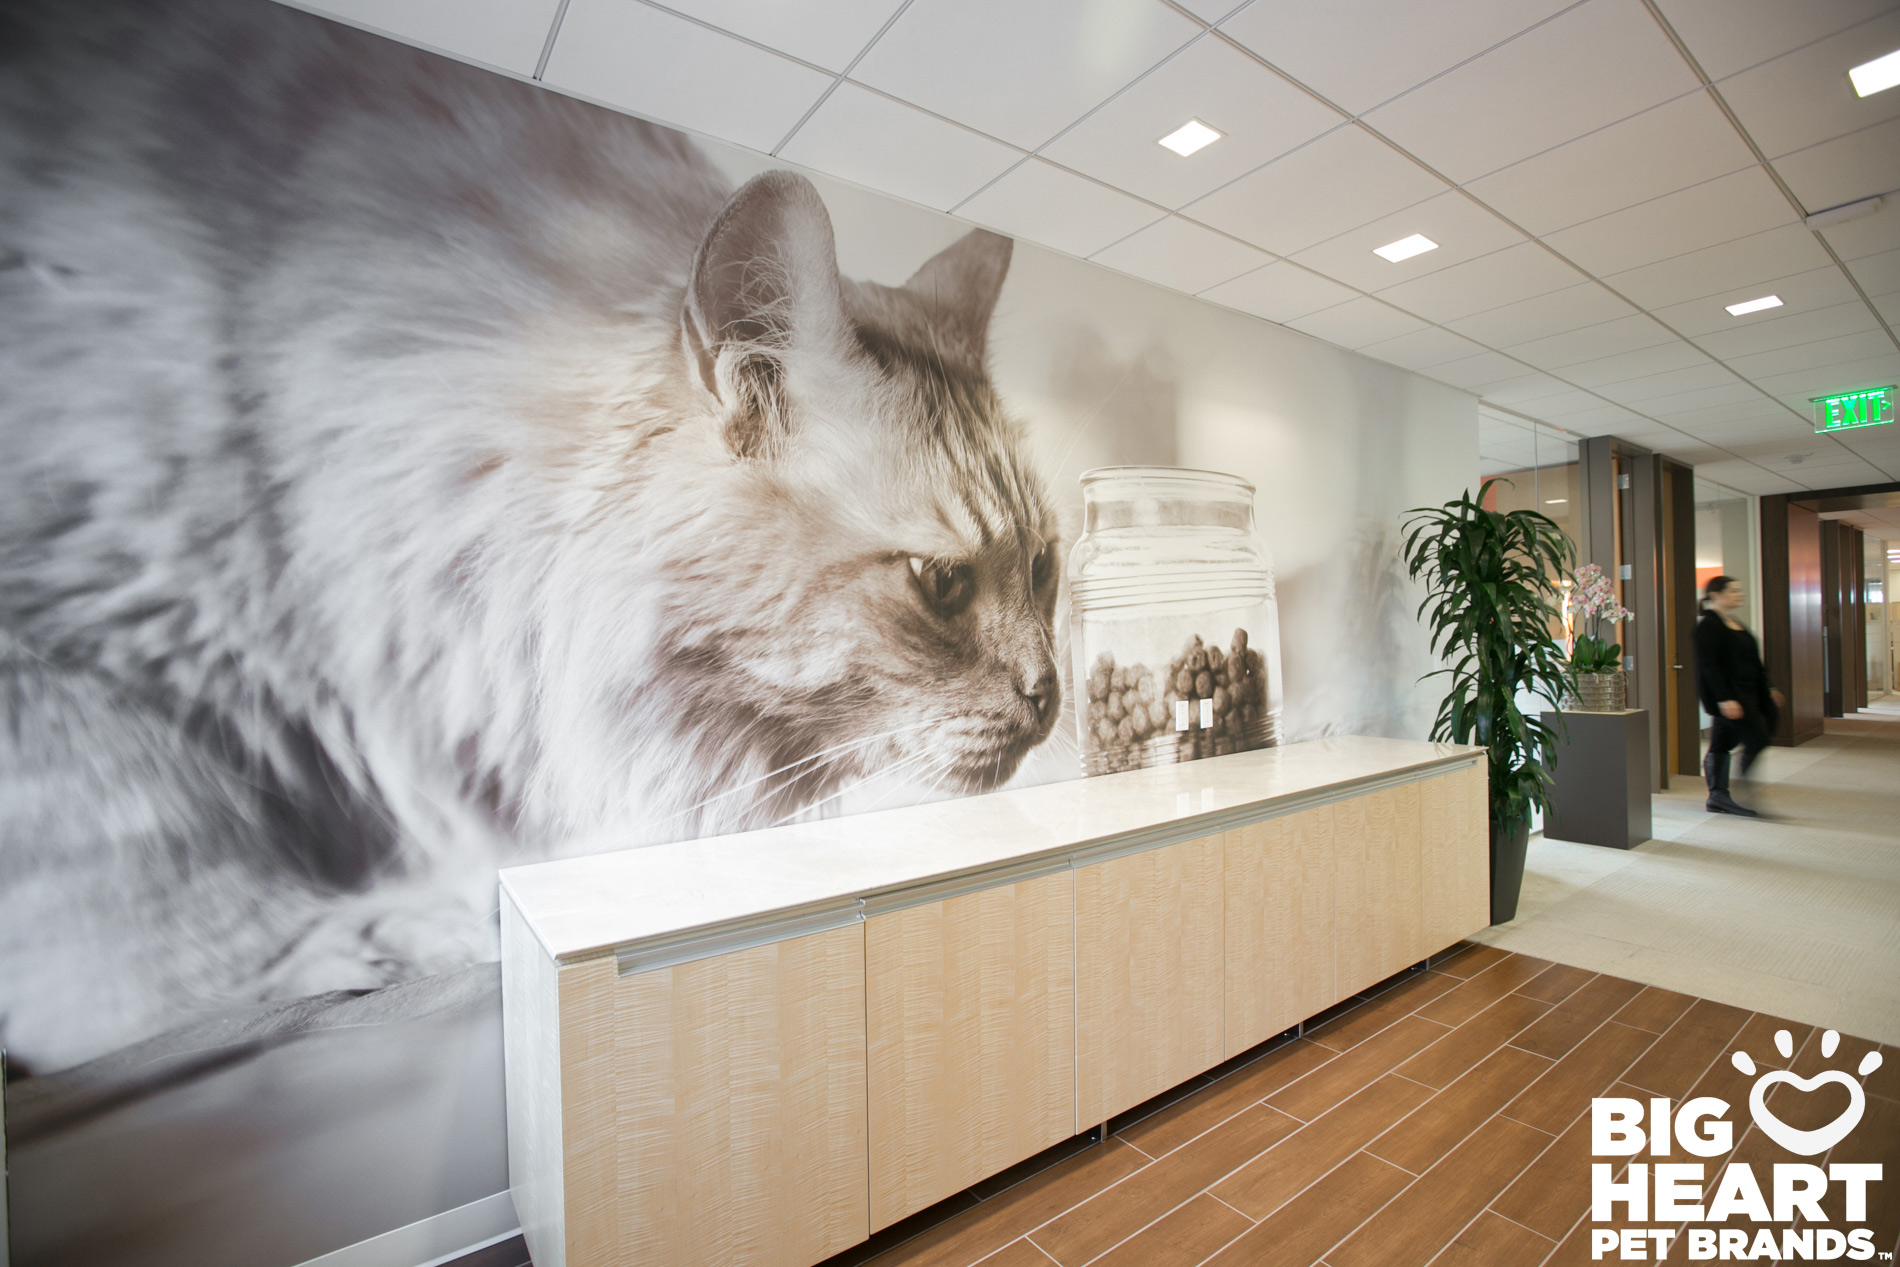 Commissioned Photography | Big Heart Cat by Mark Rogers